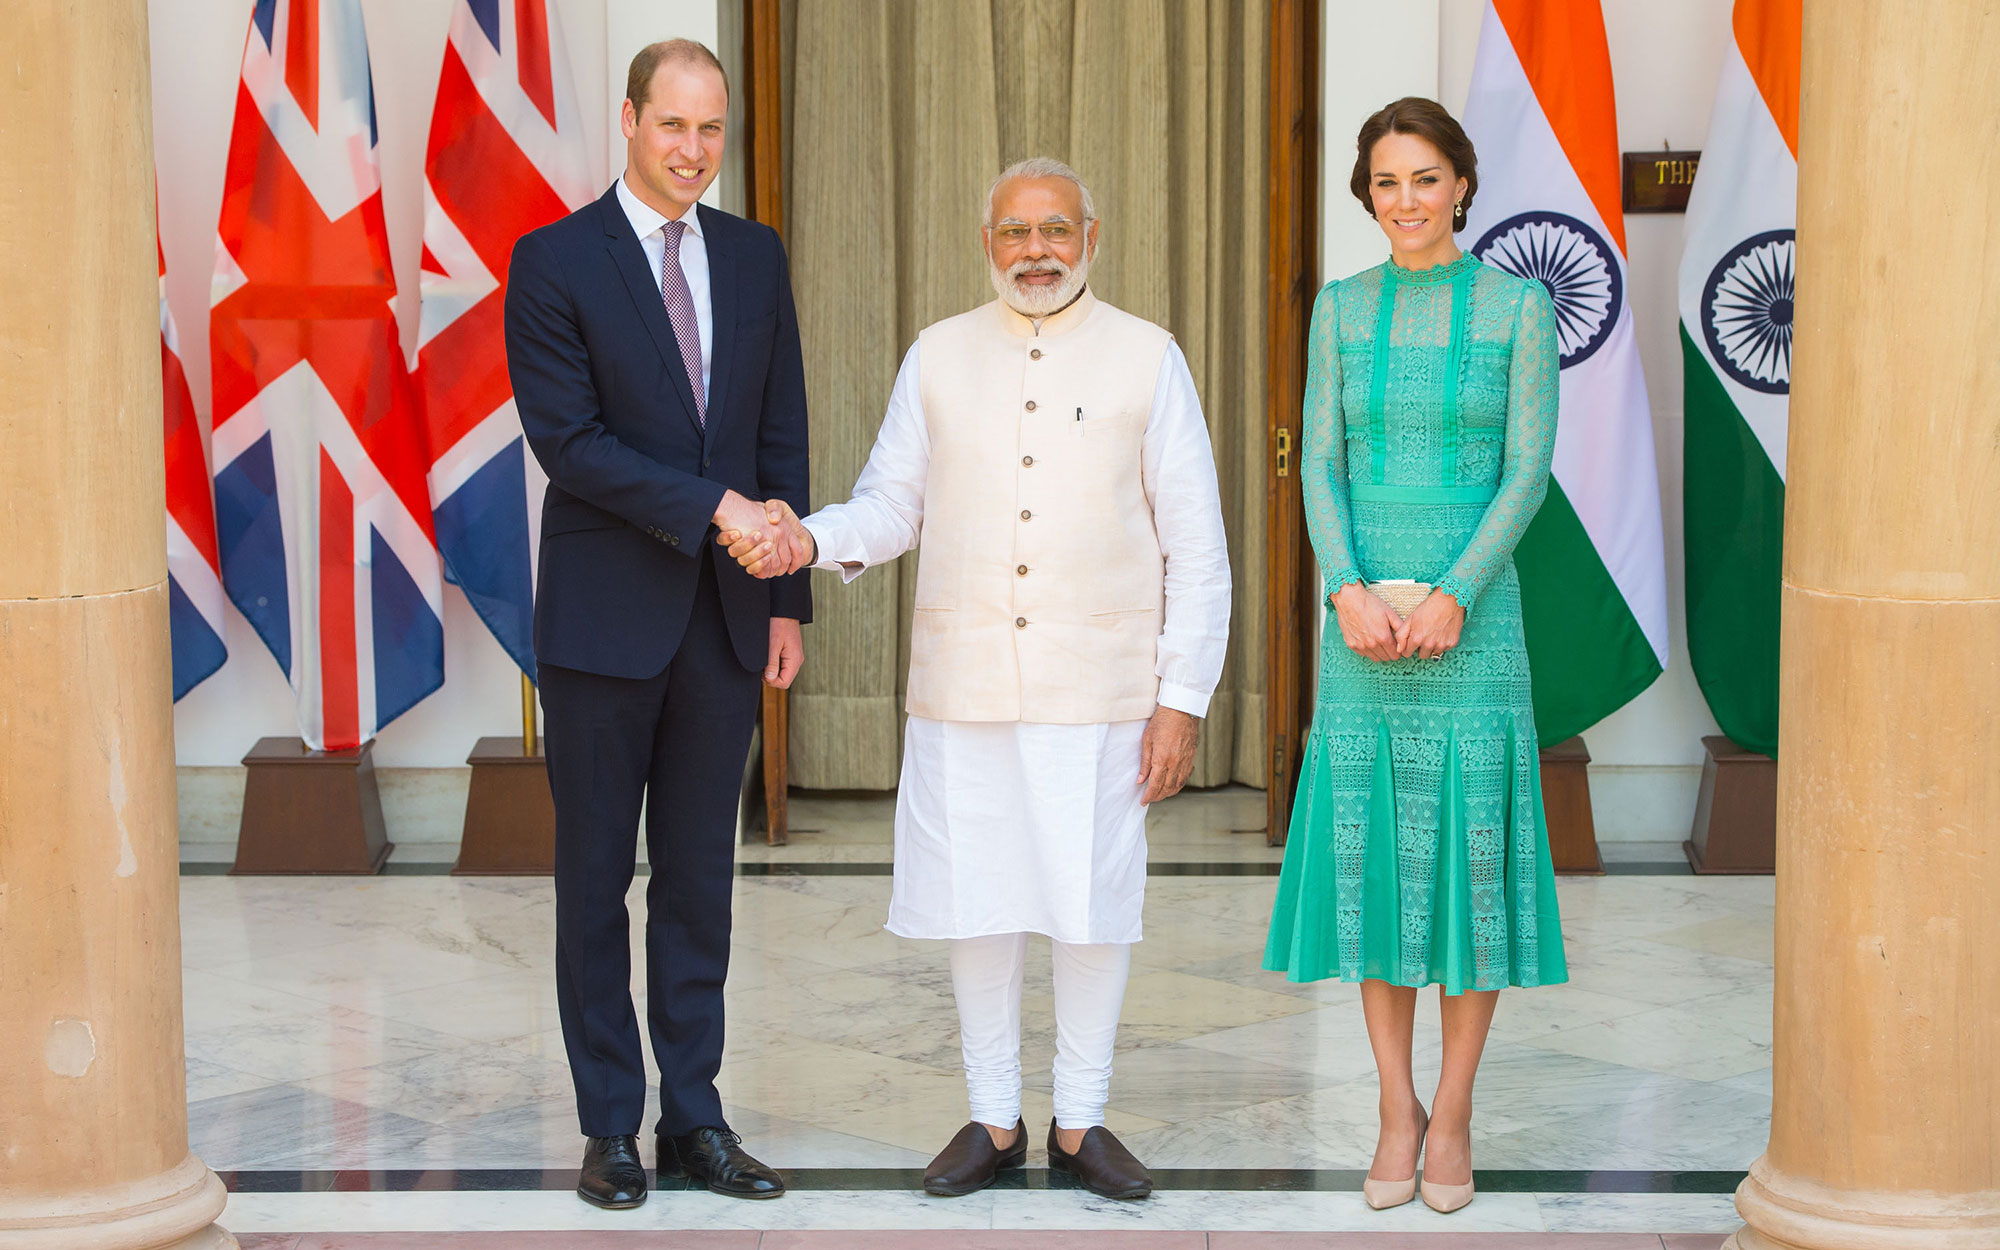 Prince William and Kate Middleton Embark on their Royal Tour of India and Bhutan: Meeting the Prime Minister